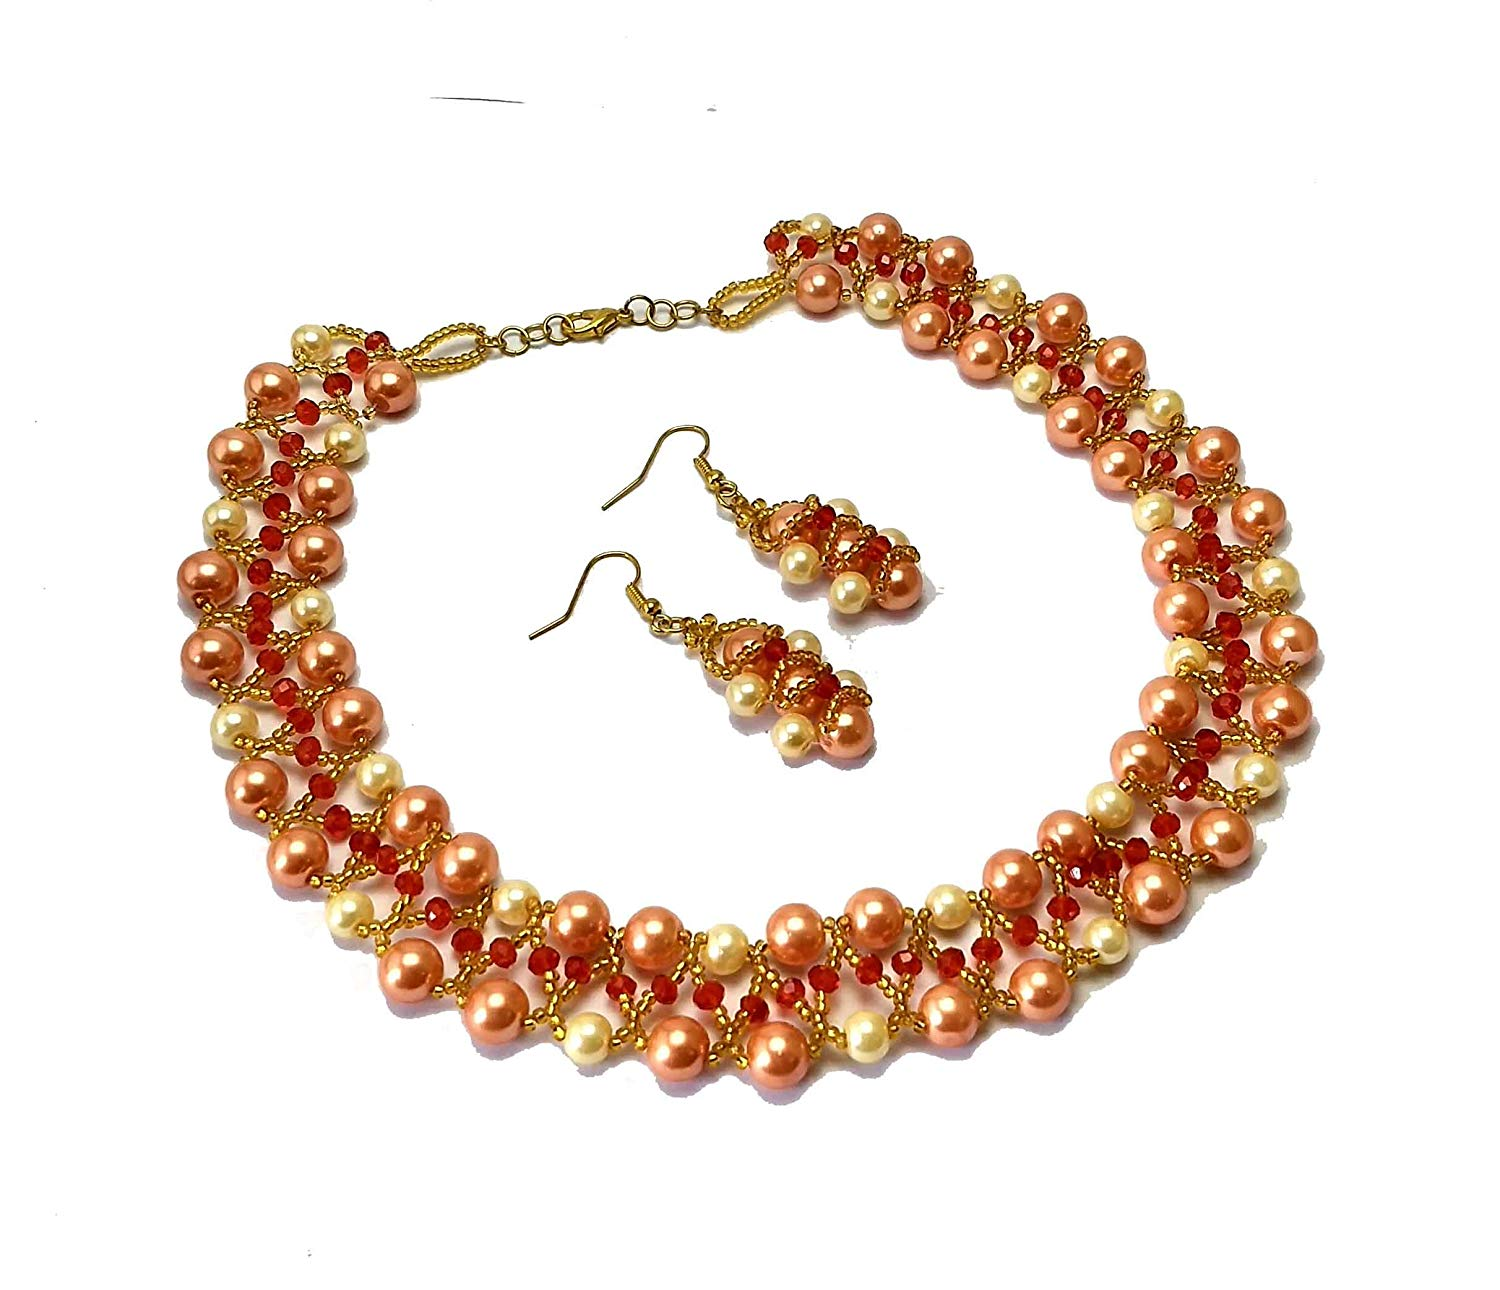 Orange beads necklace, orange glass beads necklace with matching earrings, handmade necklace, beaded necklace, choker necklace, chokers